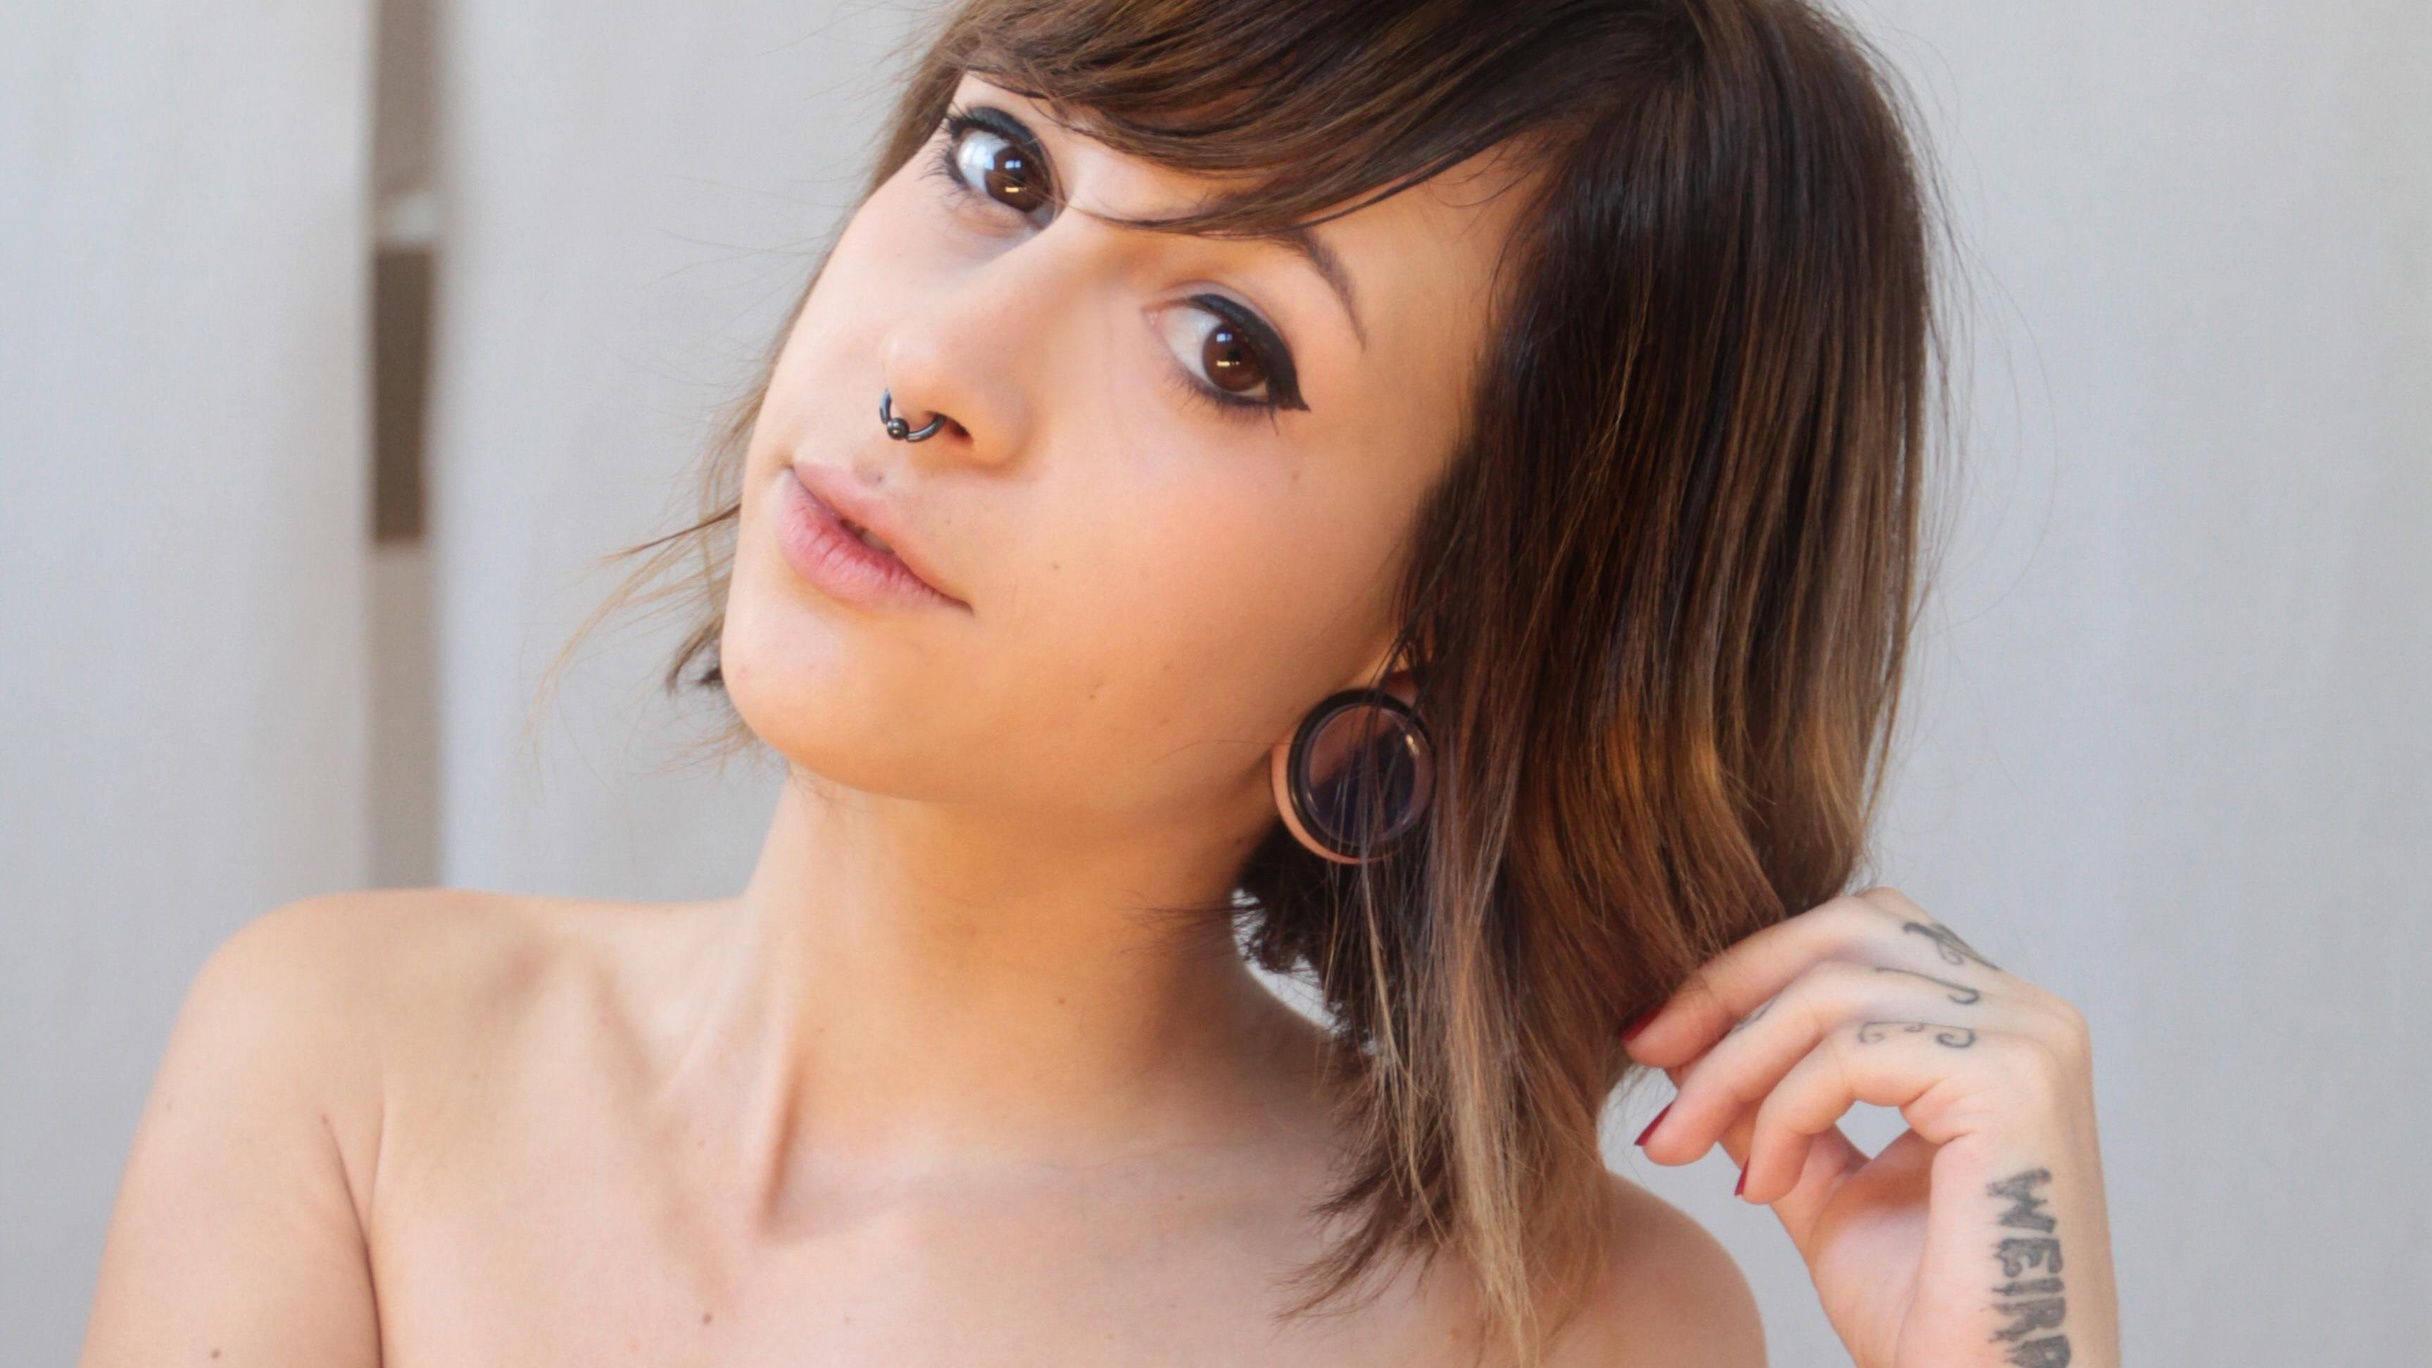 Ada Frost  - Quintessence suicidegirls @yotsuba girl,lips,barefoot,beauty,epic